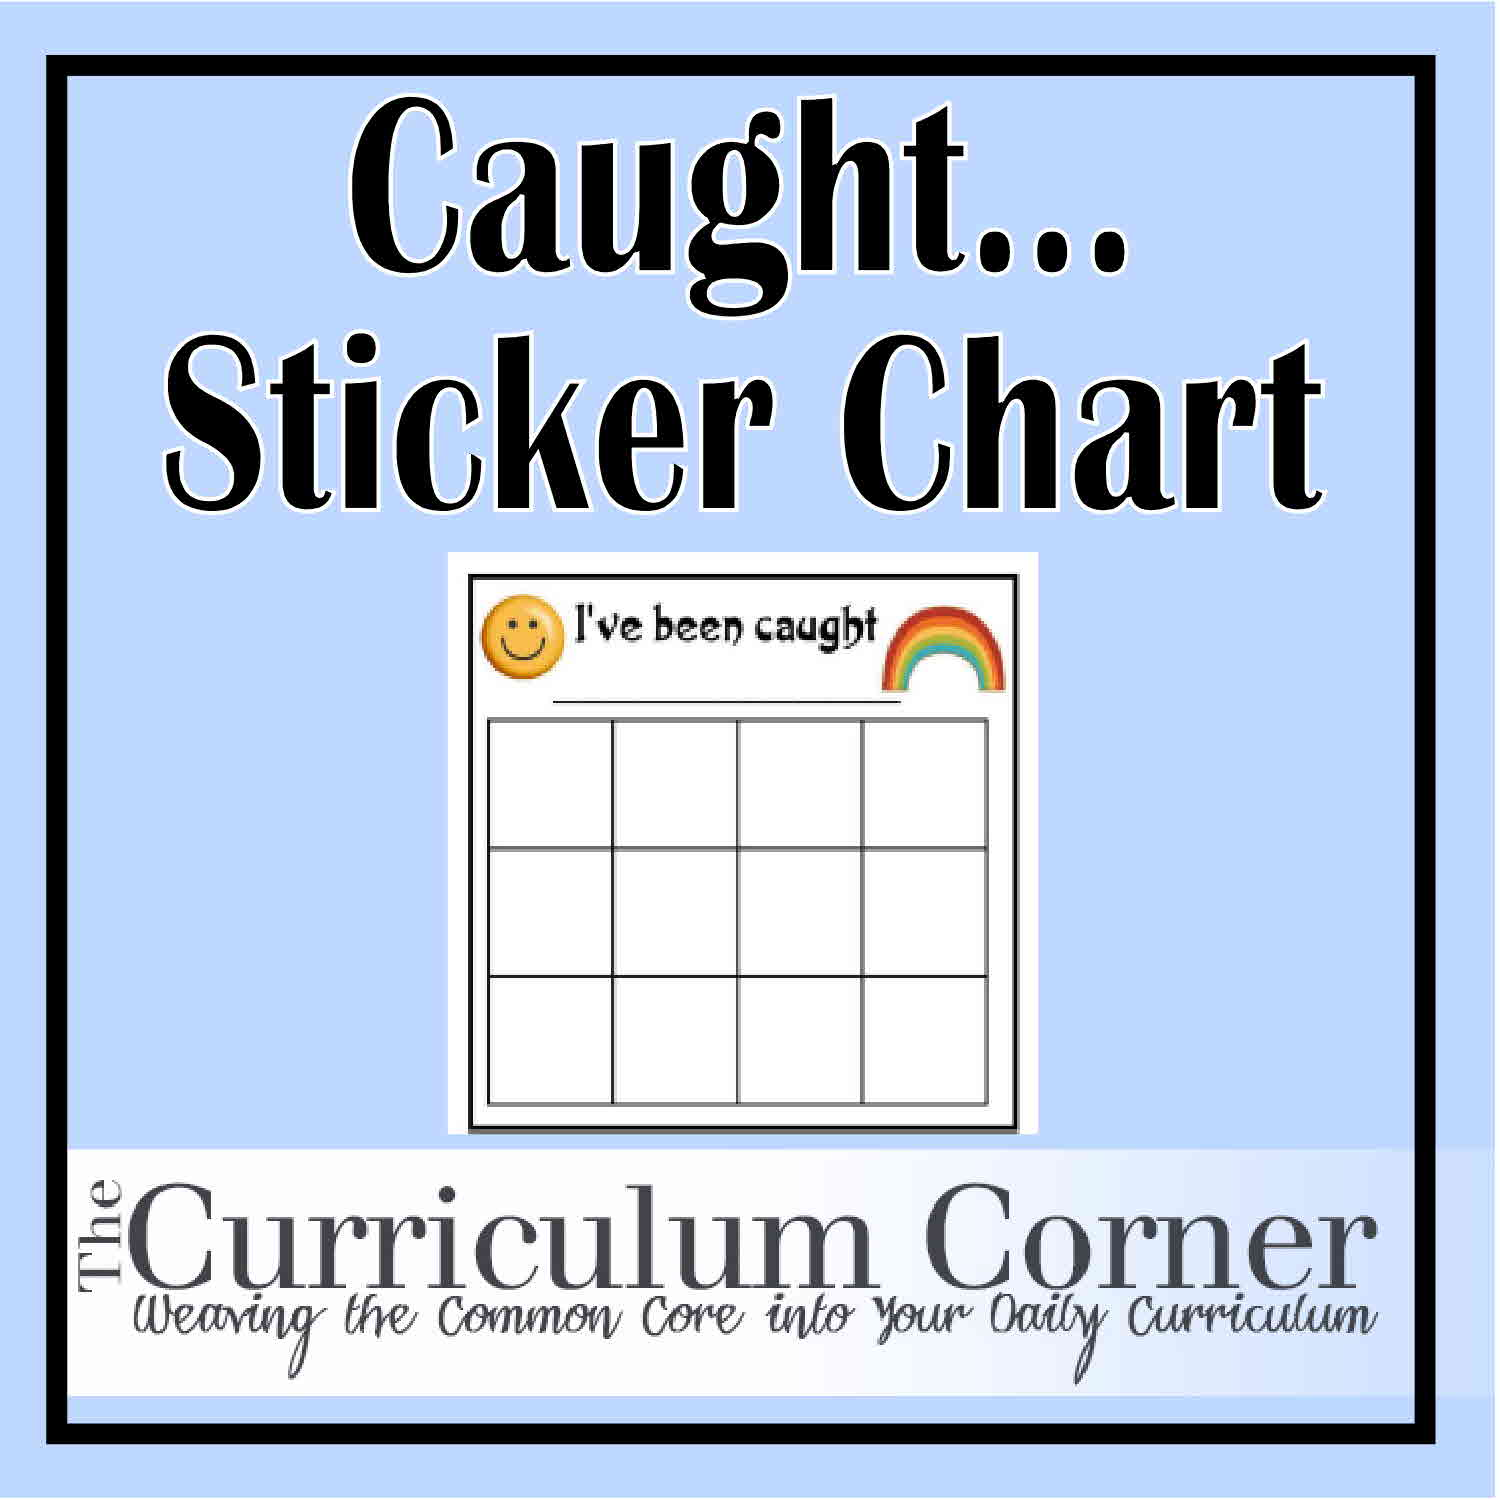 Printable Sticker Charts - The Curriculum Corner 123